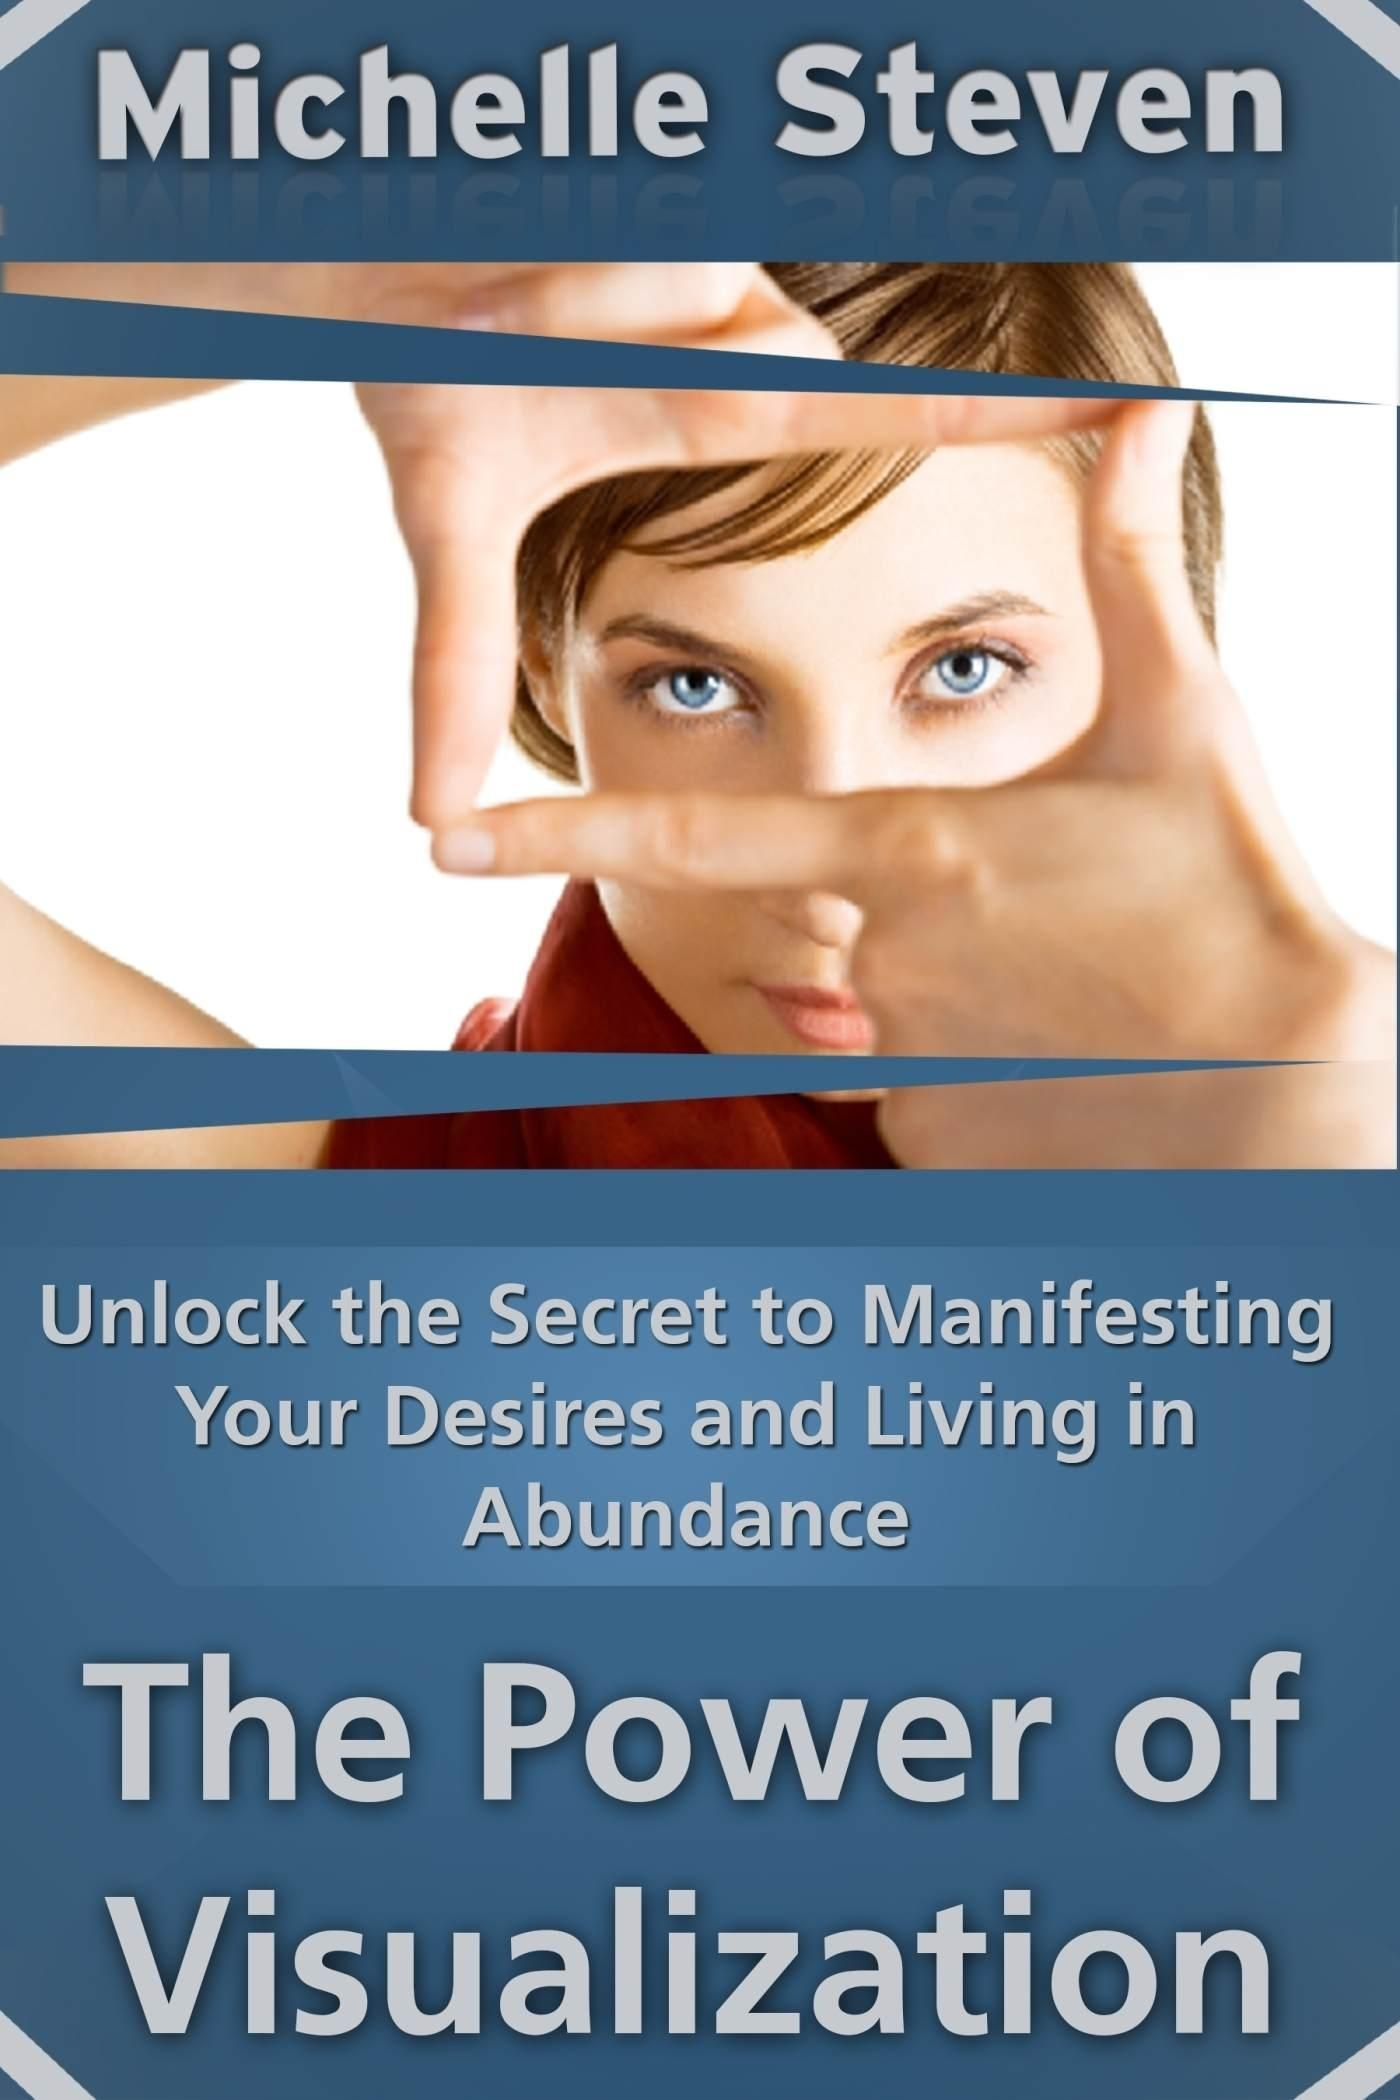 Unlock the Secret to Manifesting Your Desires and Living in Abundance